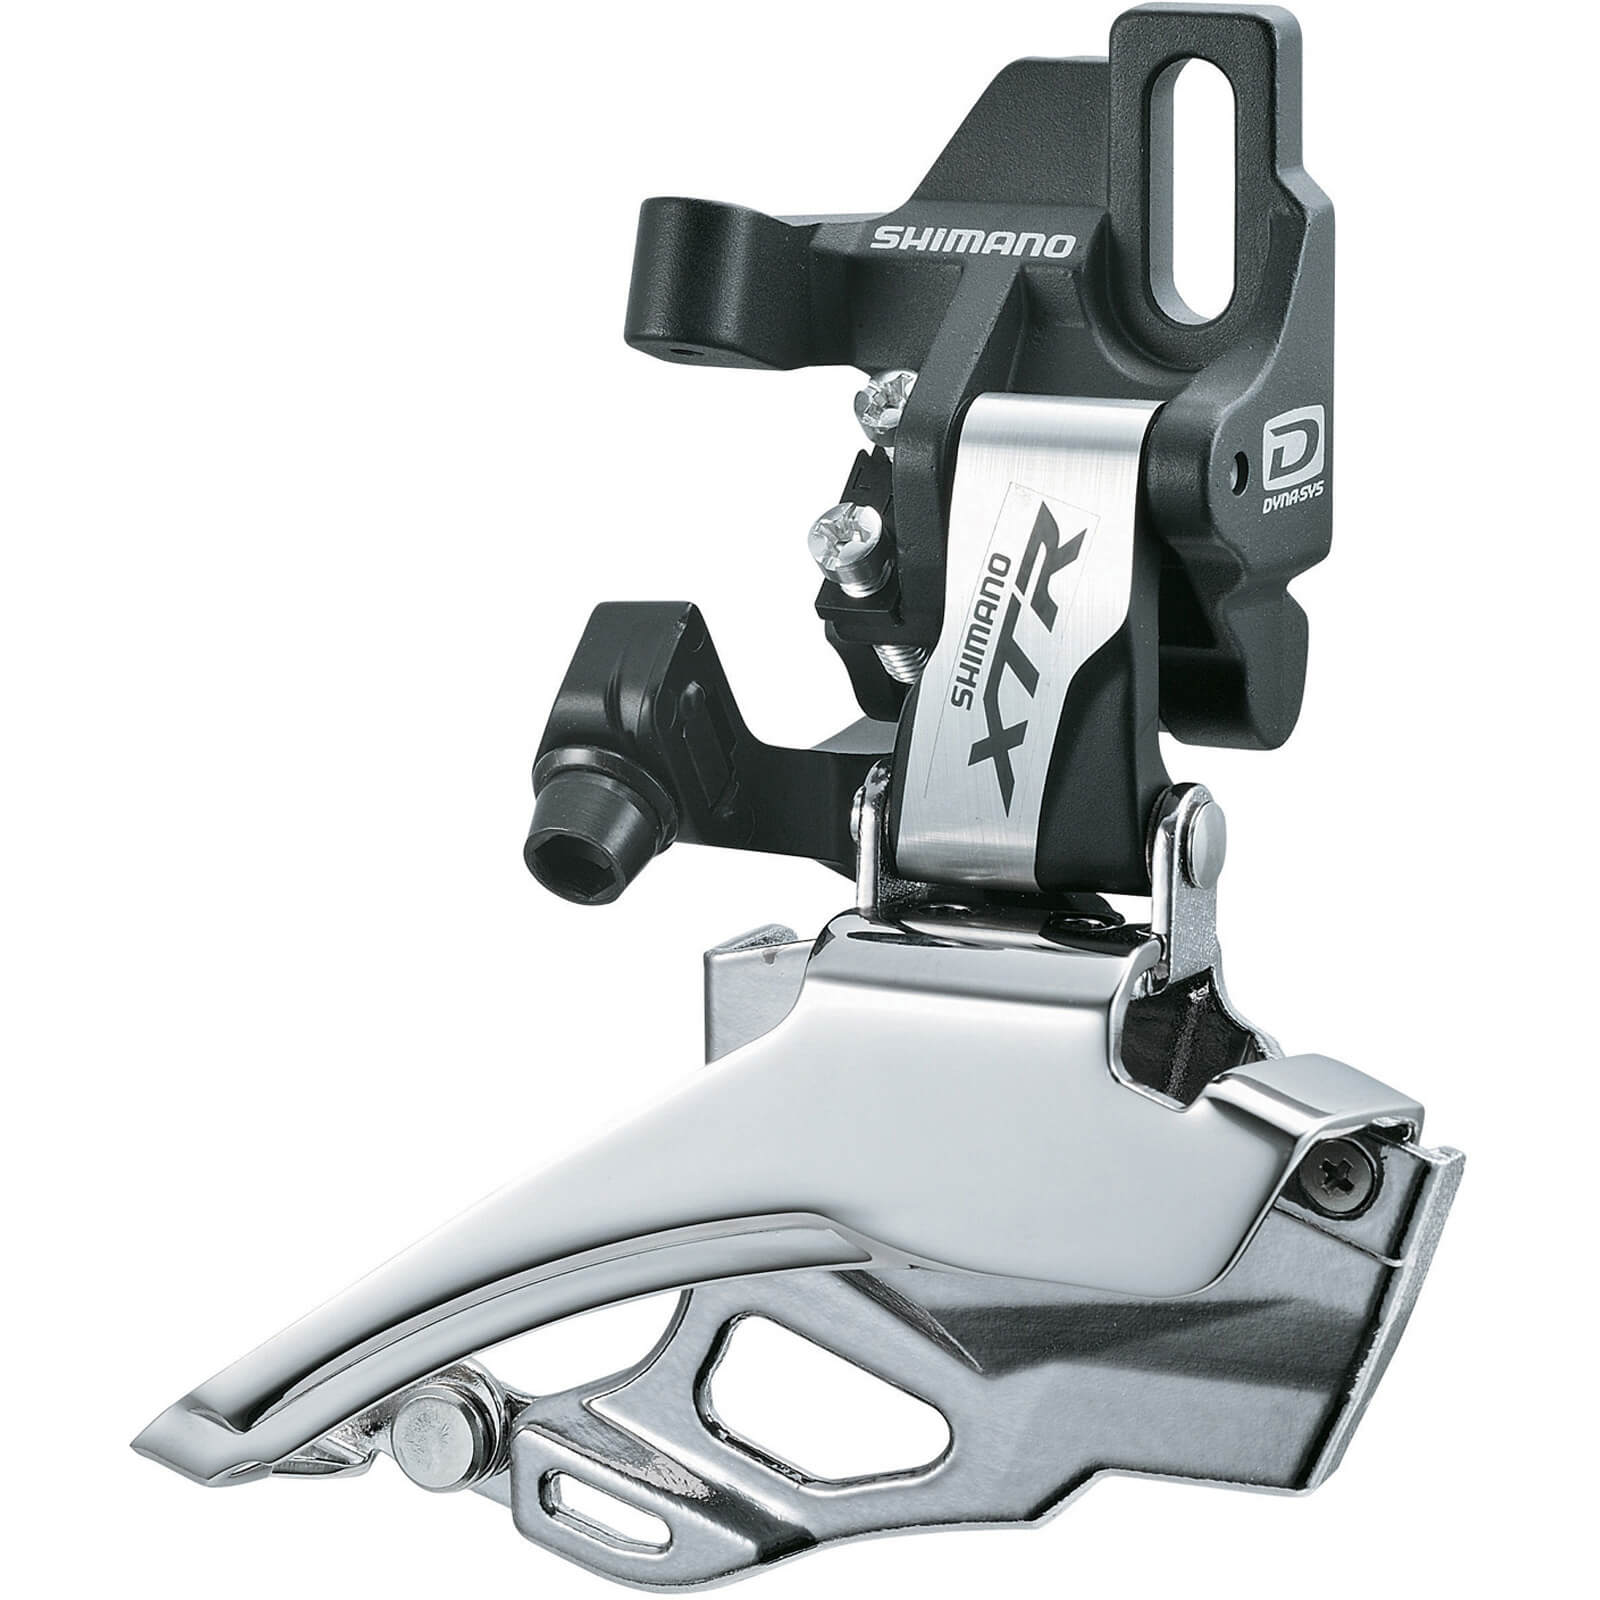 Shimano FD-M986 XTR 10-Speed Double Front Derailleur - Dual Pull - Direct-Fit